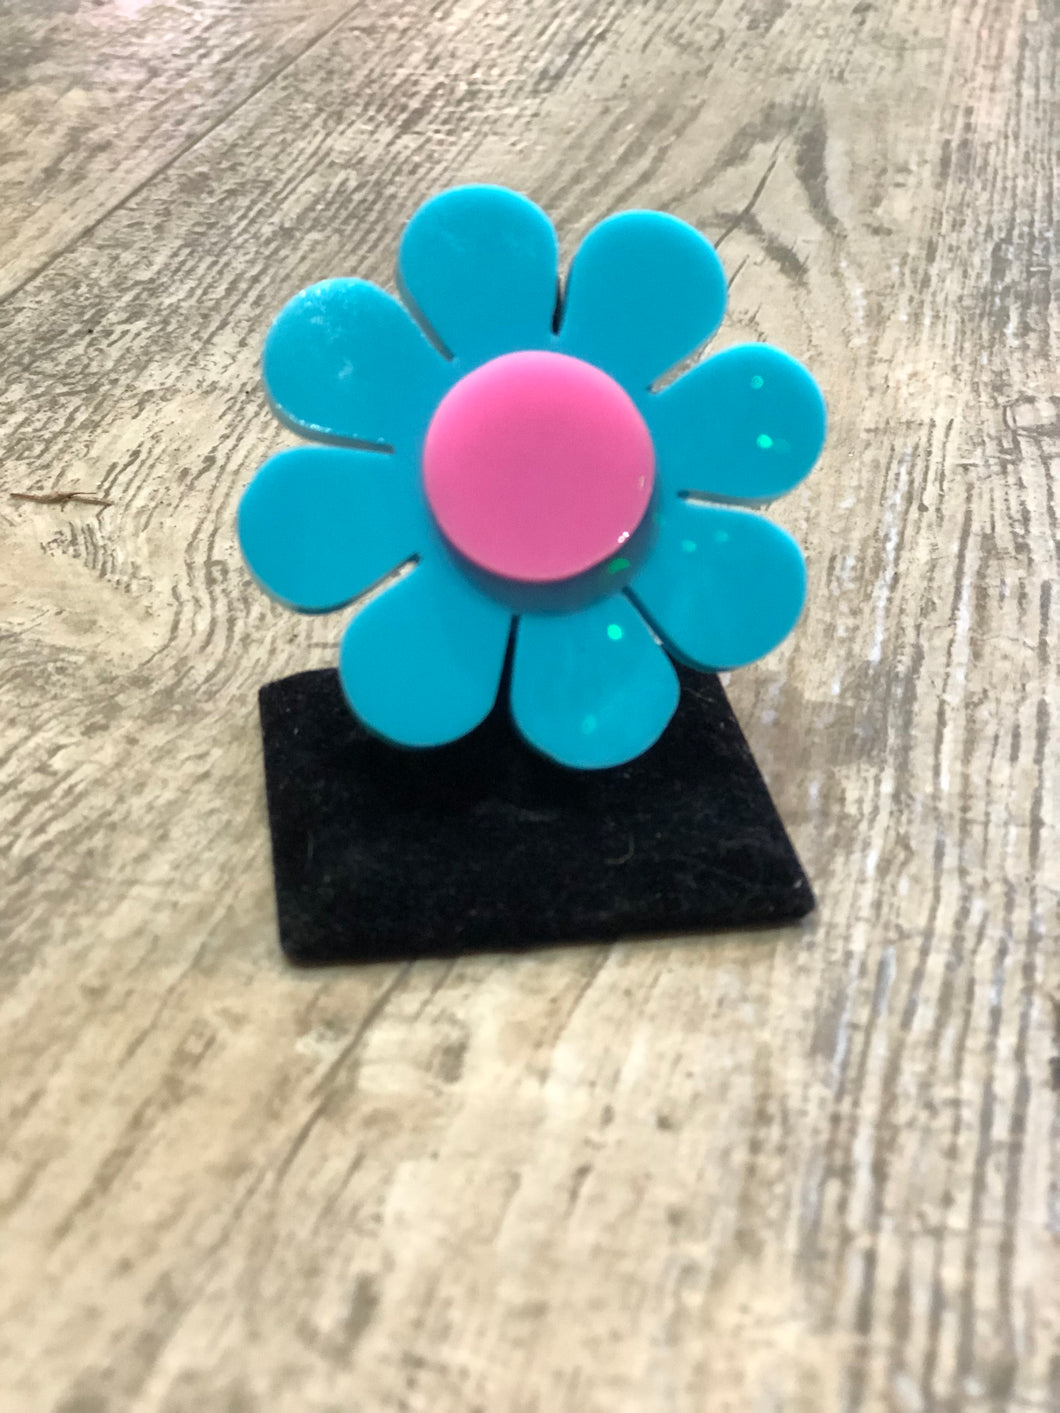 Turquoise and Pink Flower Ring by Marina Fini | Rings - 80s 90s Retro Vintage Clothing | Spark Pretty